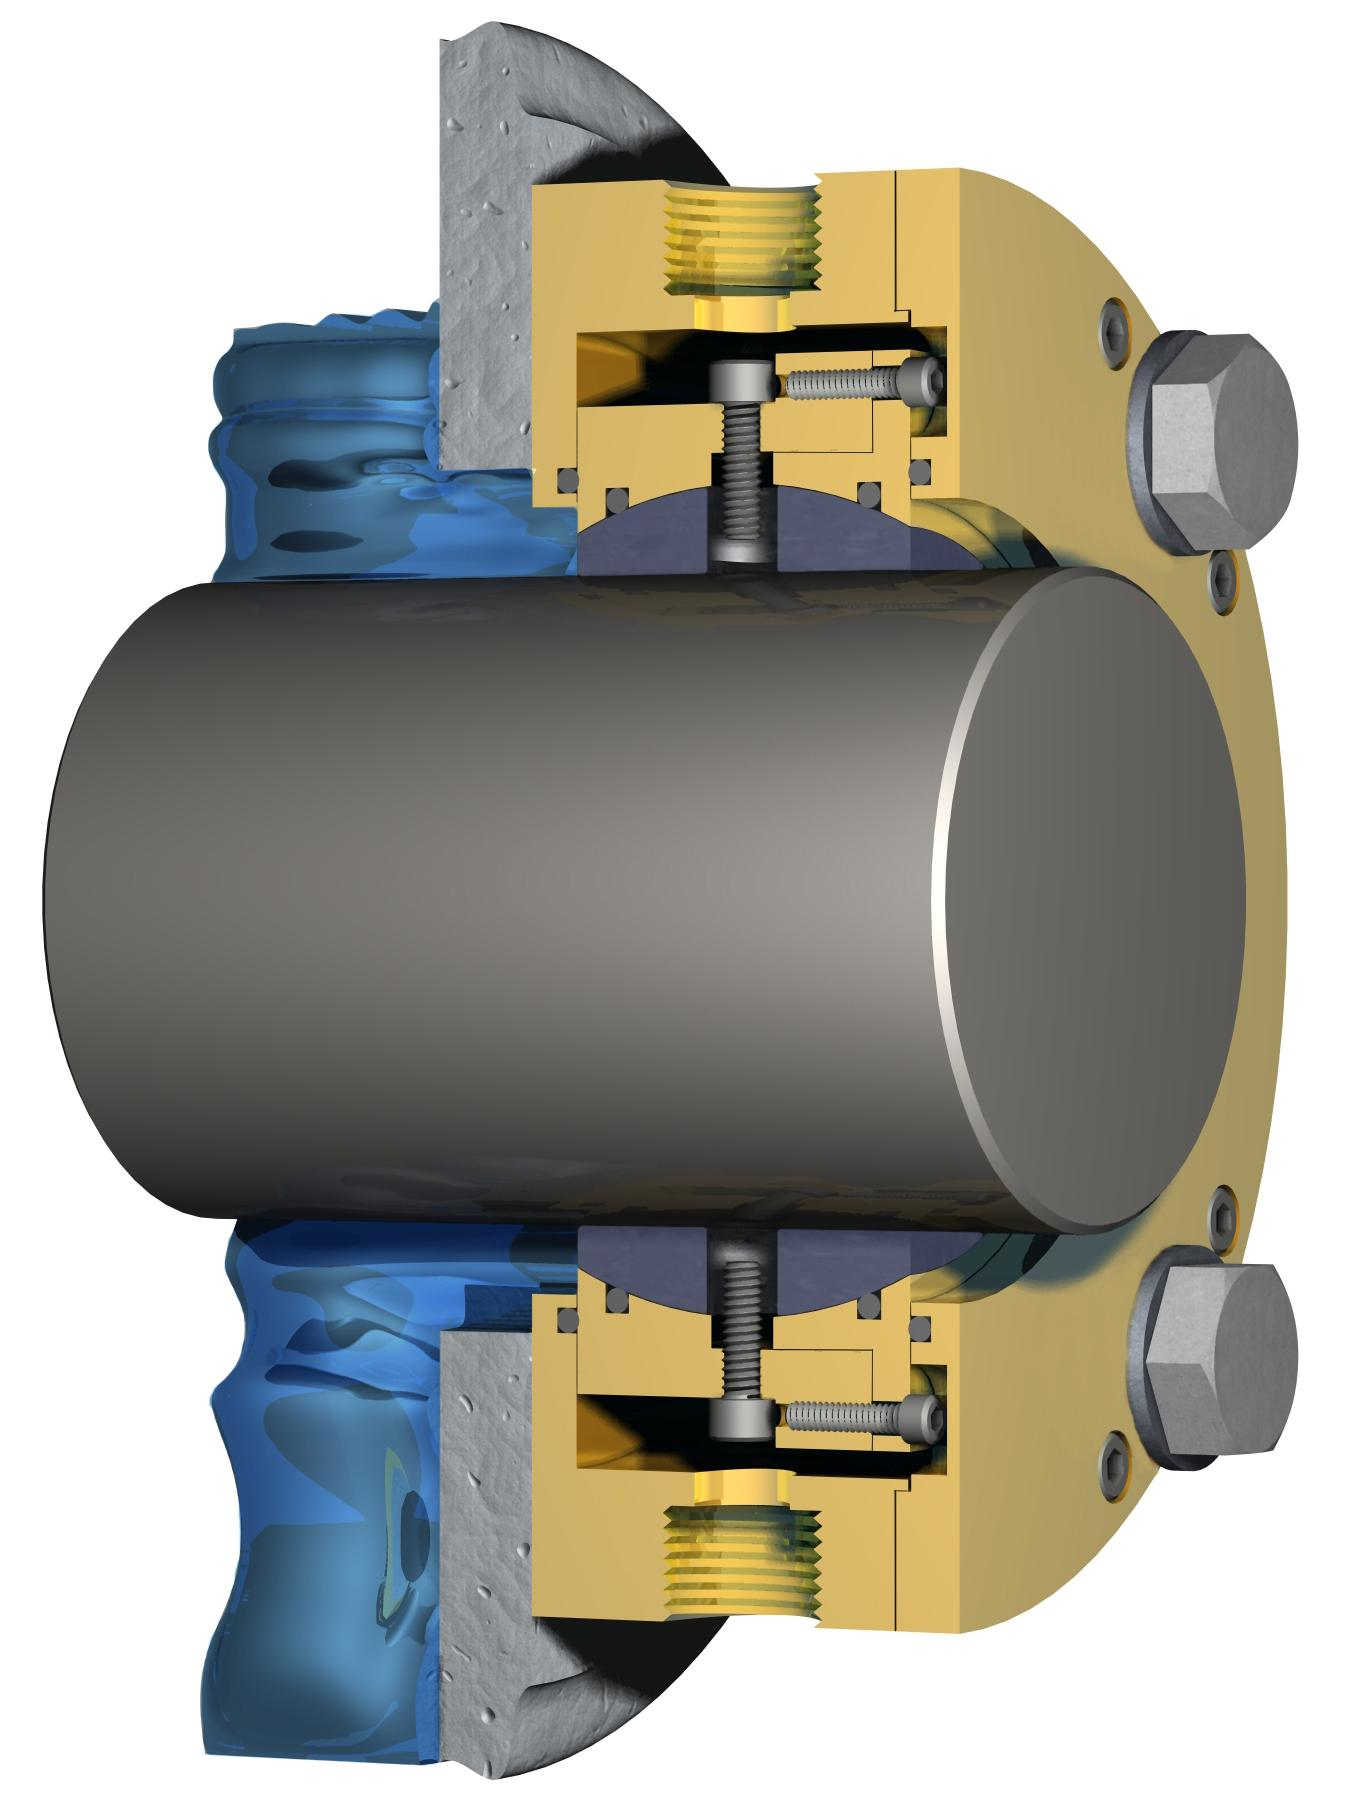 The Smooth Bore Air Mizer seal uses air to create a barrier on the shaft that keeps product in the vessel and contamination out